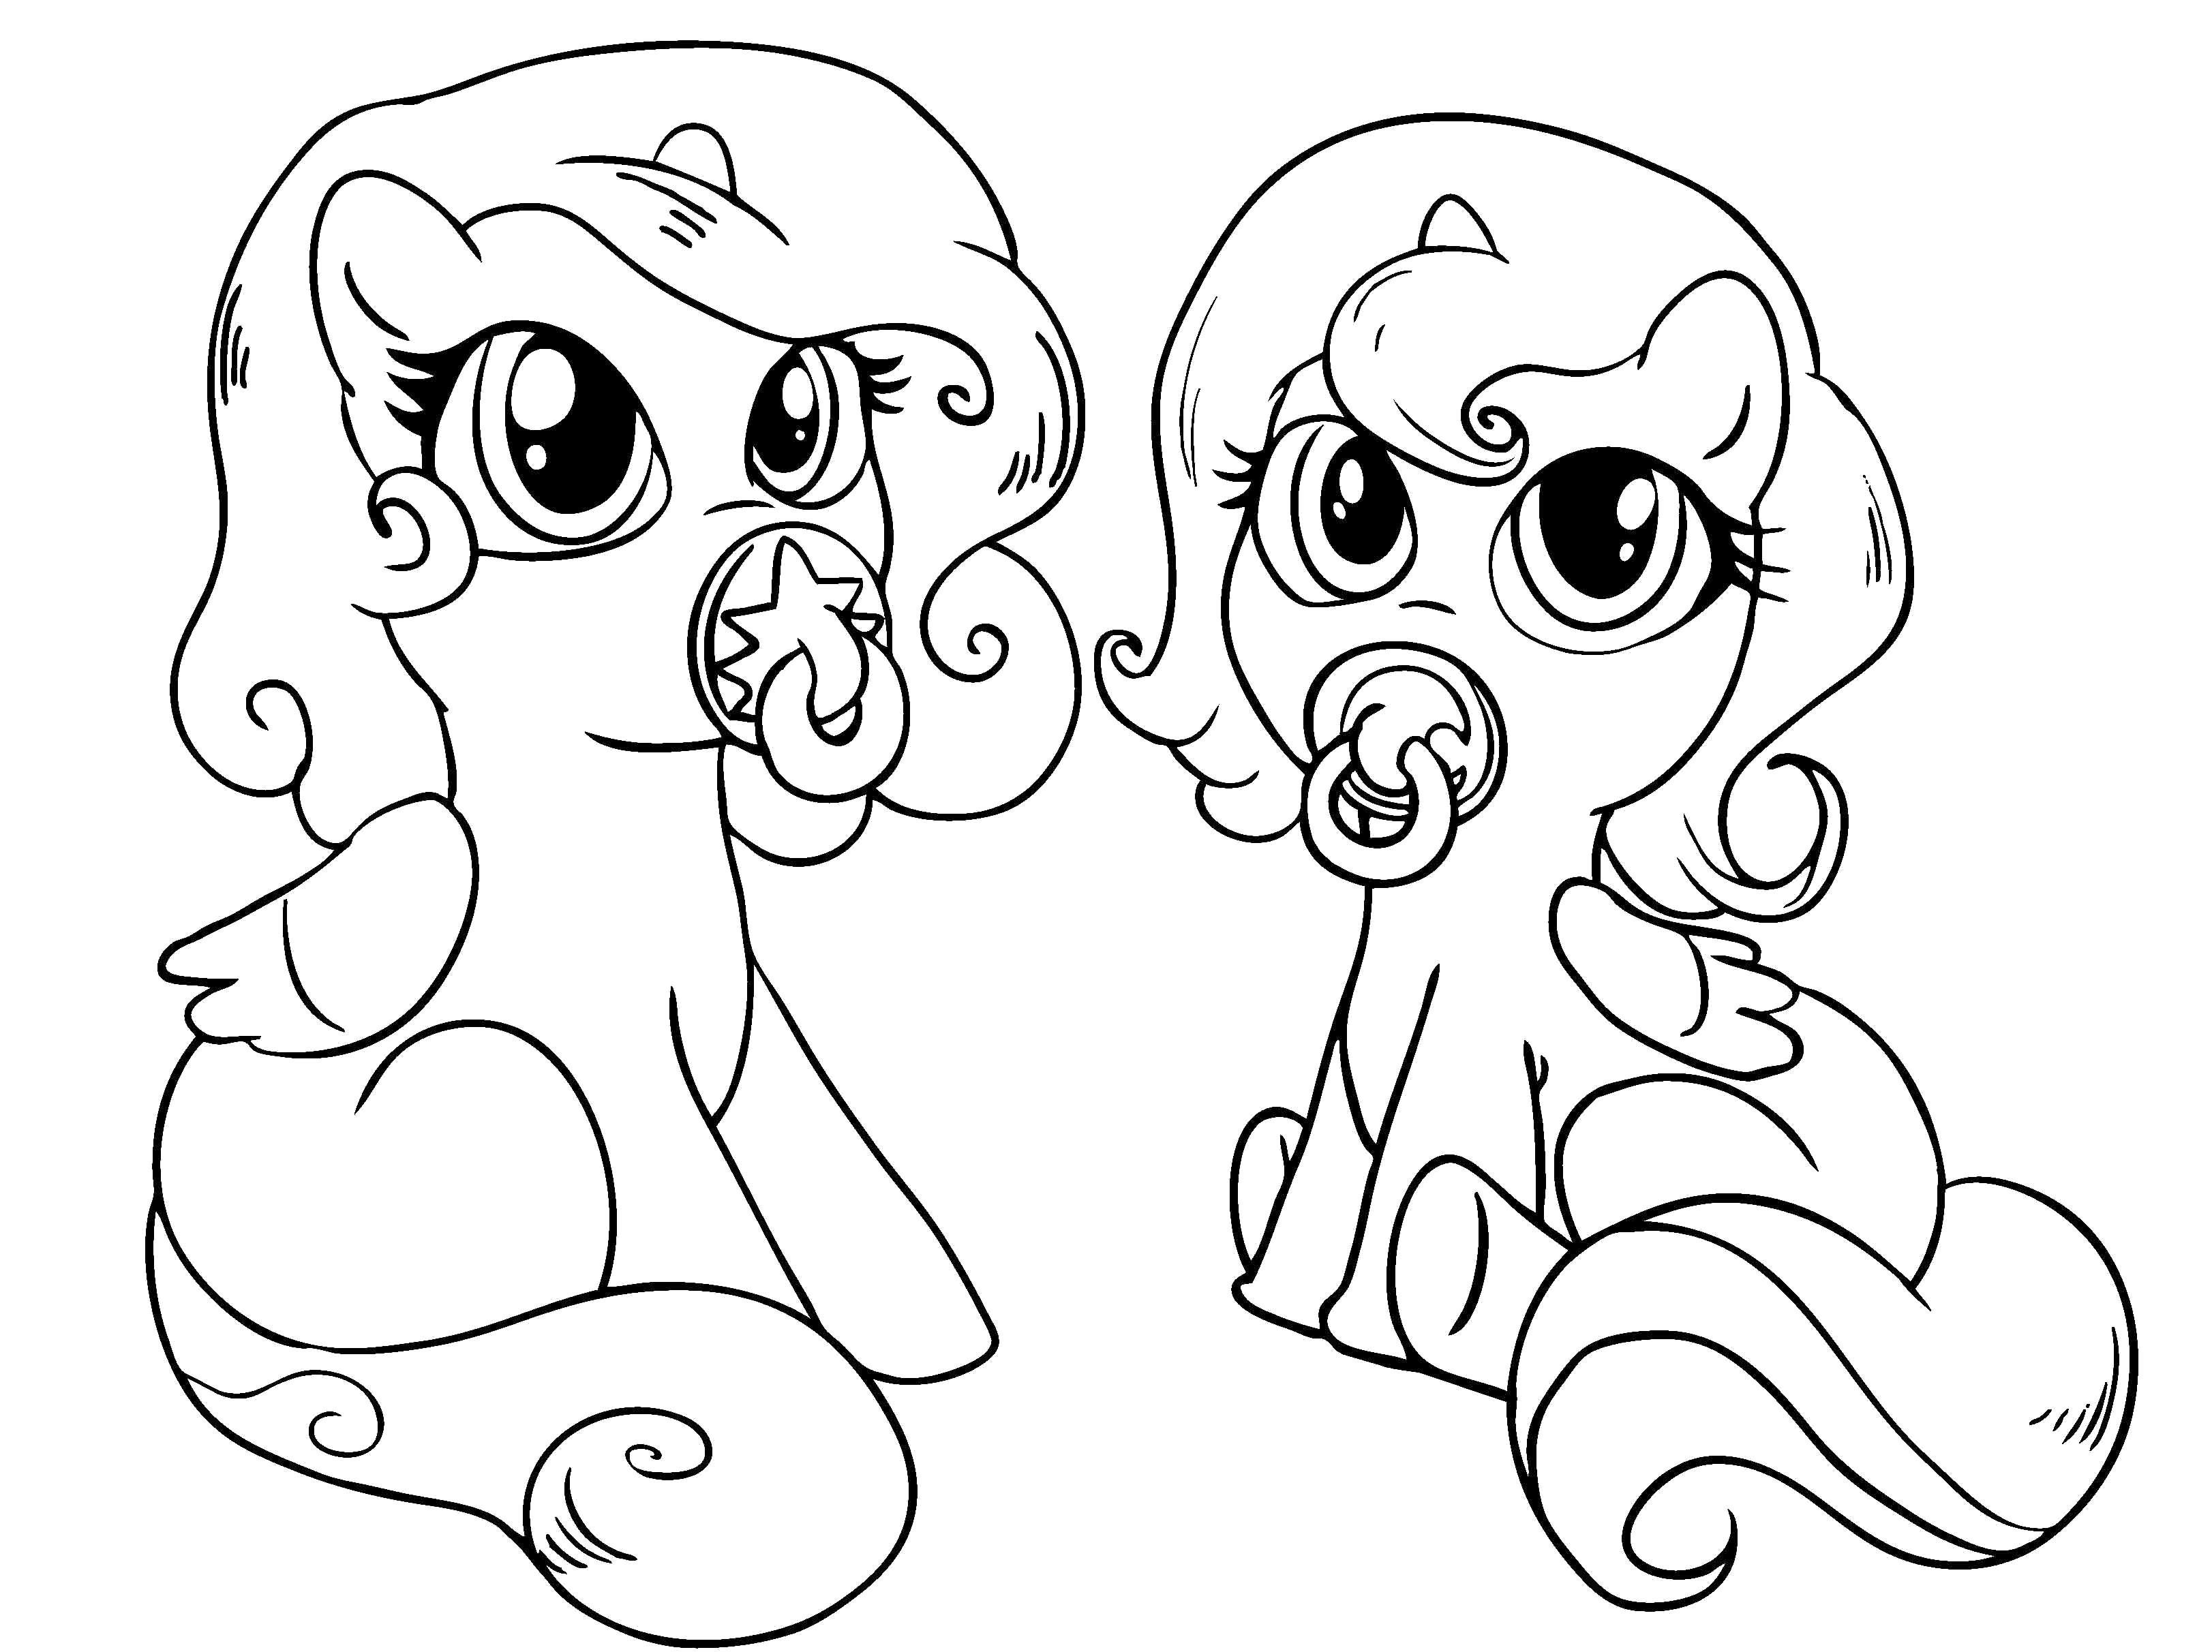 pictures of my little pony to color my little pony royal wedding coloring pages pony to color pictures little my of